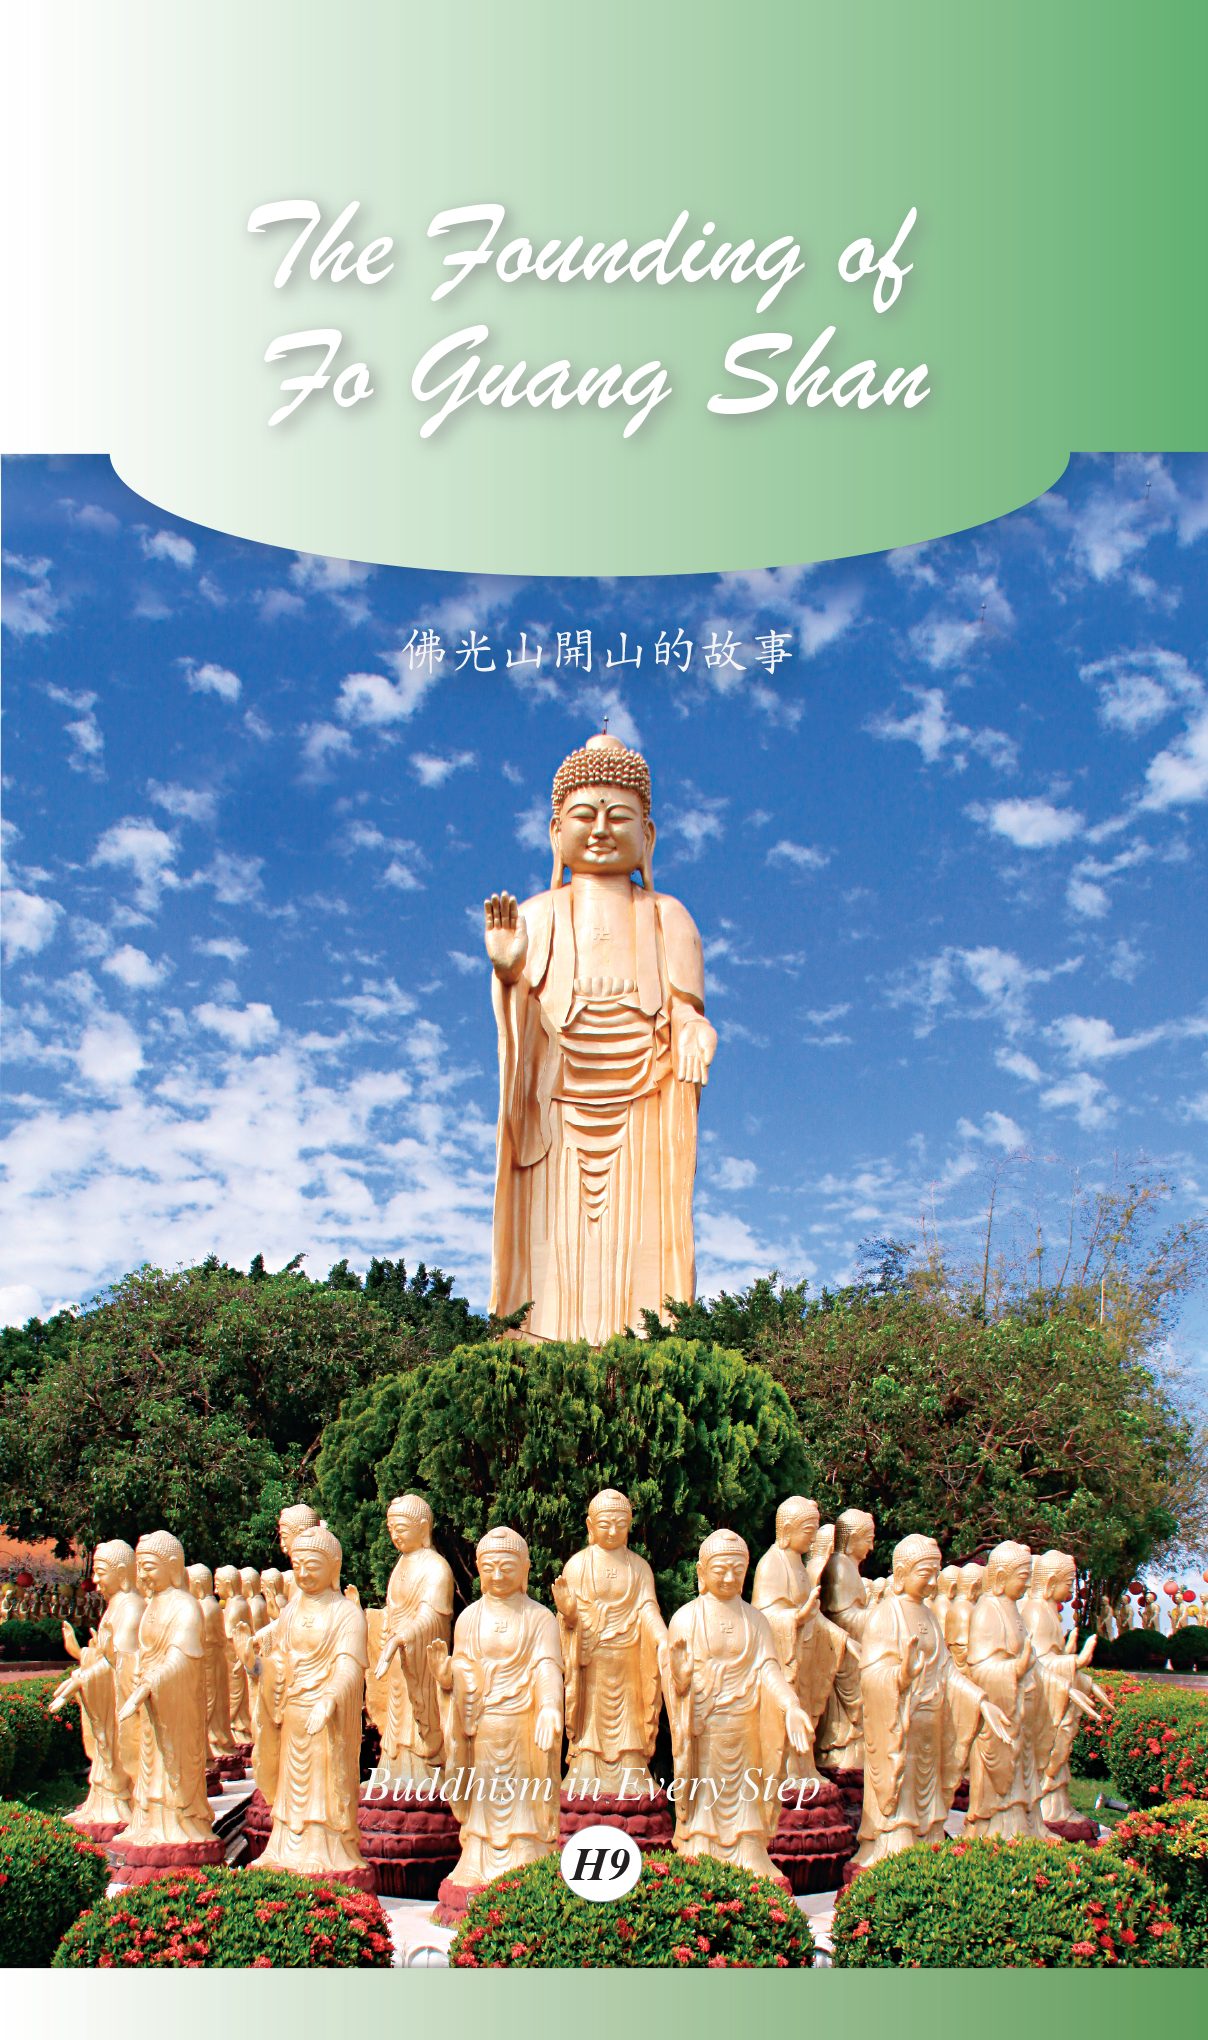 The Founding of Fo Guang Shan